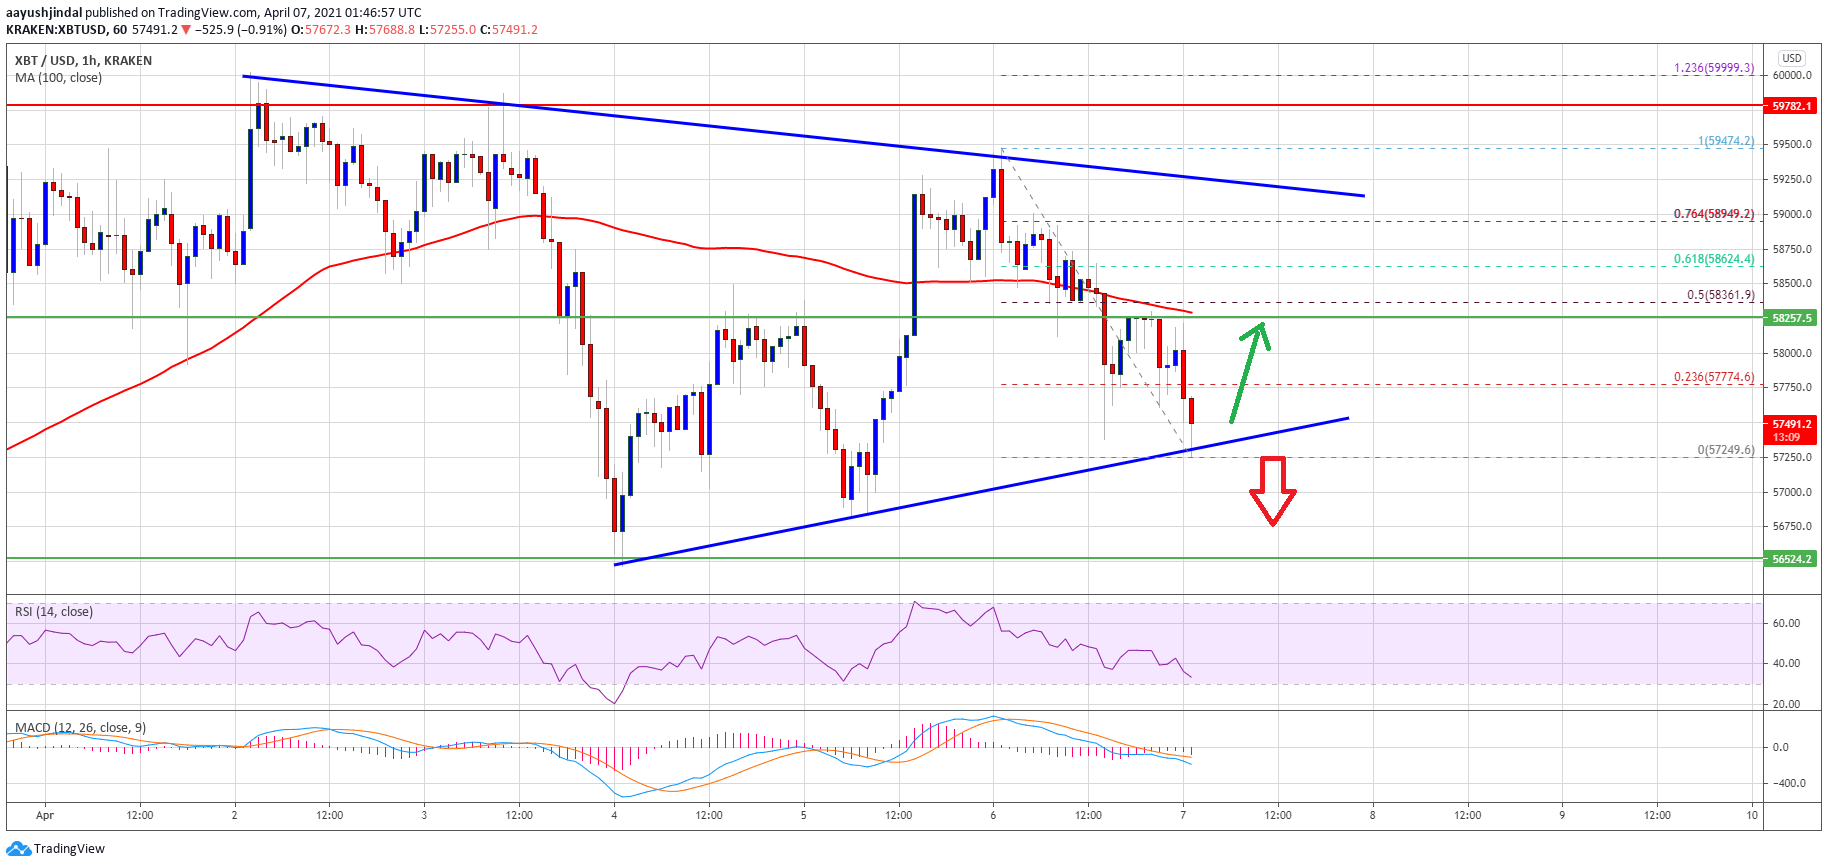 TA: Bitcoin Corrects Below $58K, But Here's Why Uptrend Is Still Intact